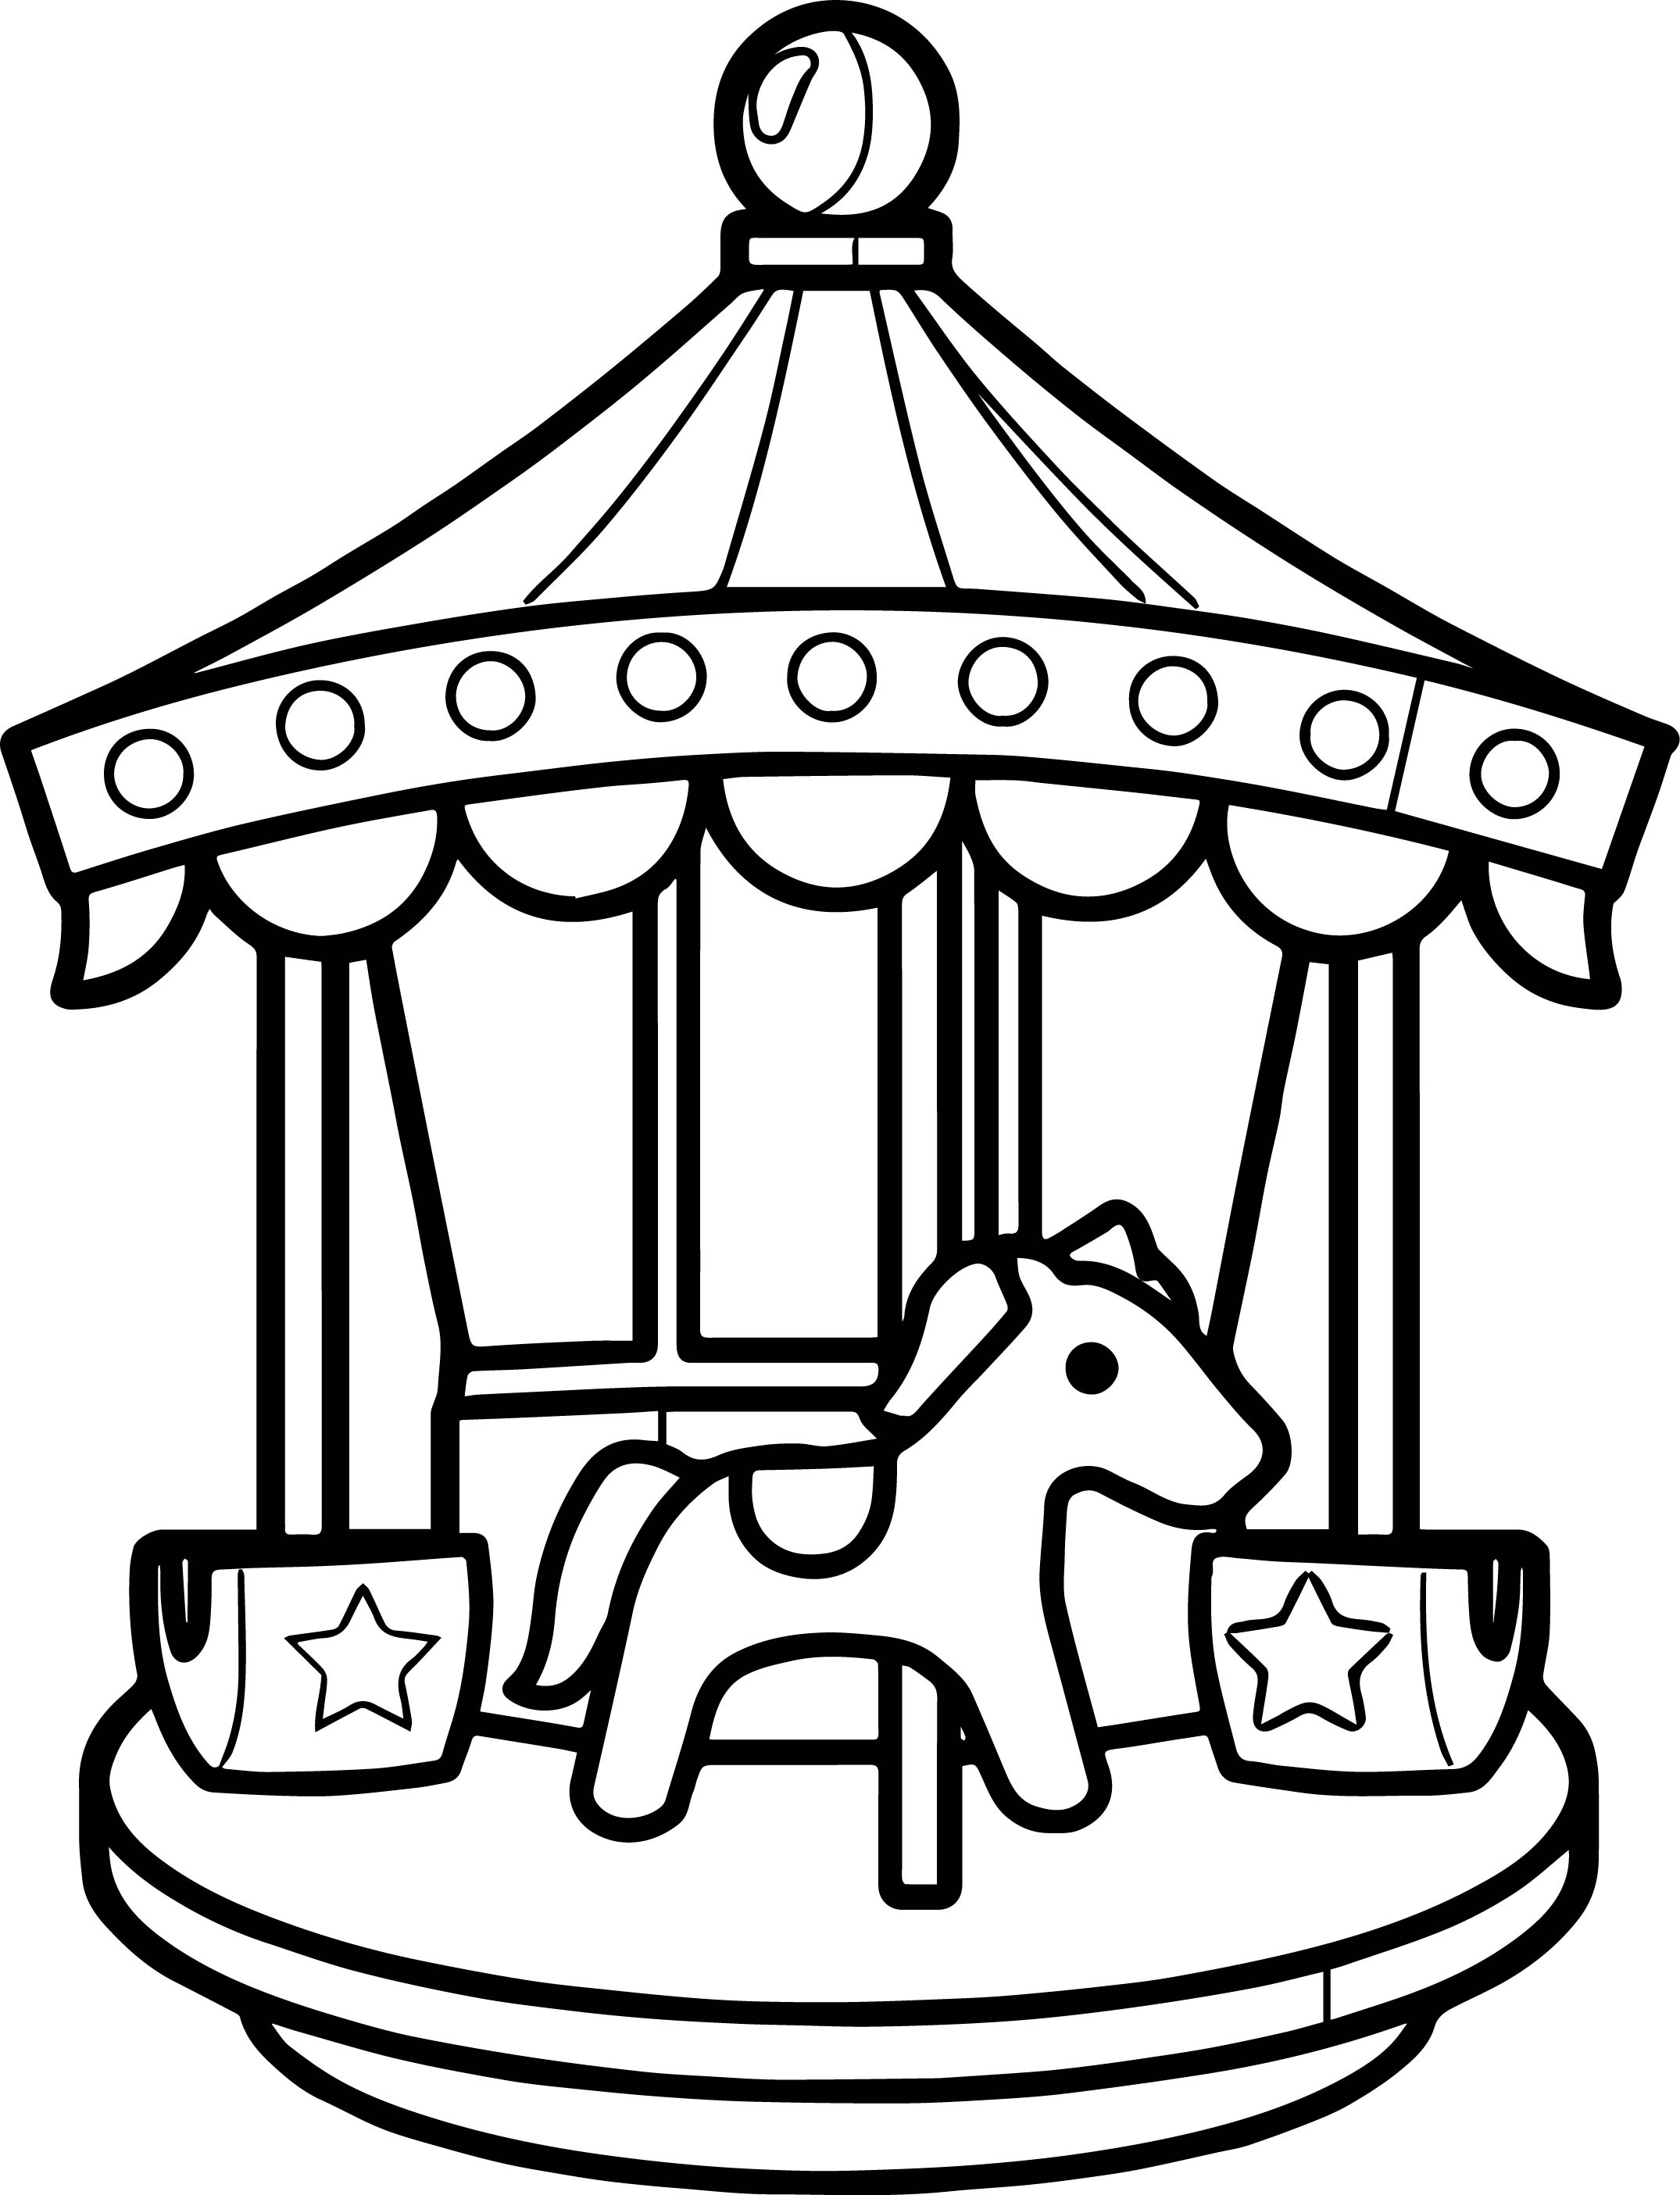 carousel coloring page wecoloringpage